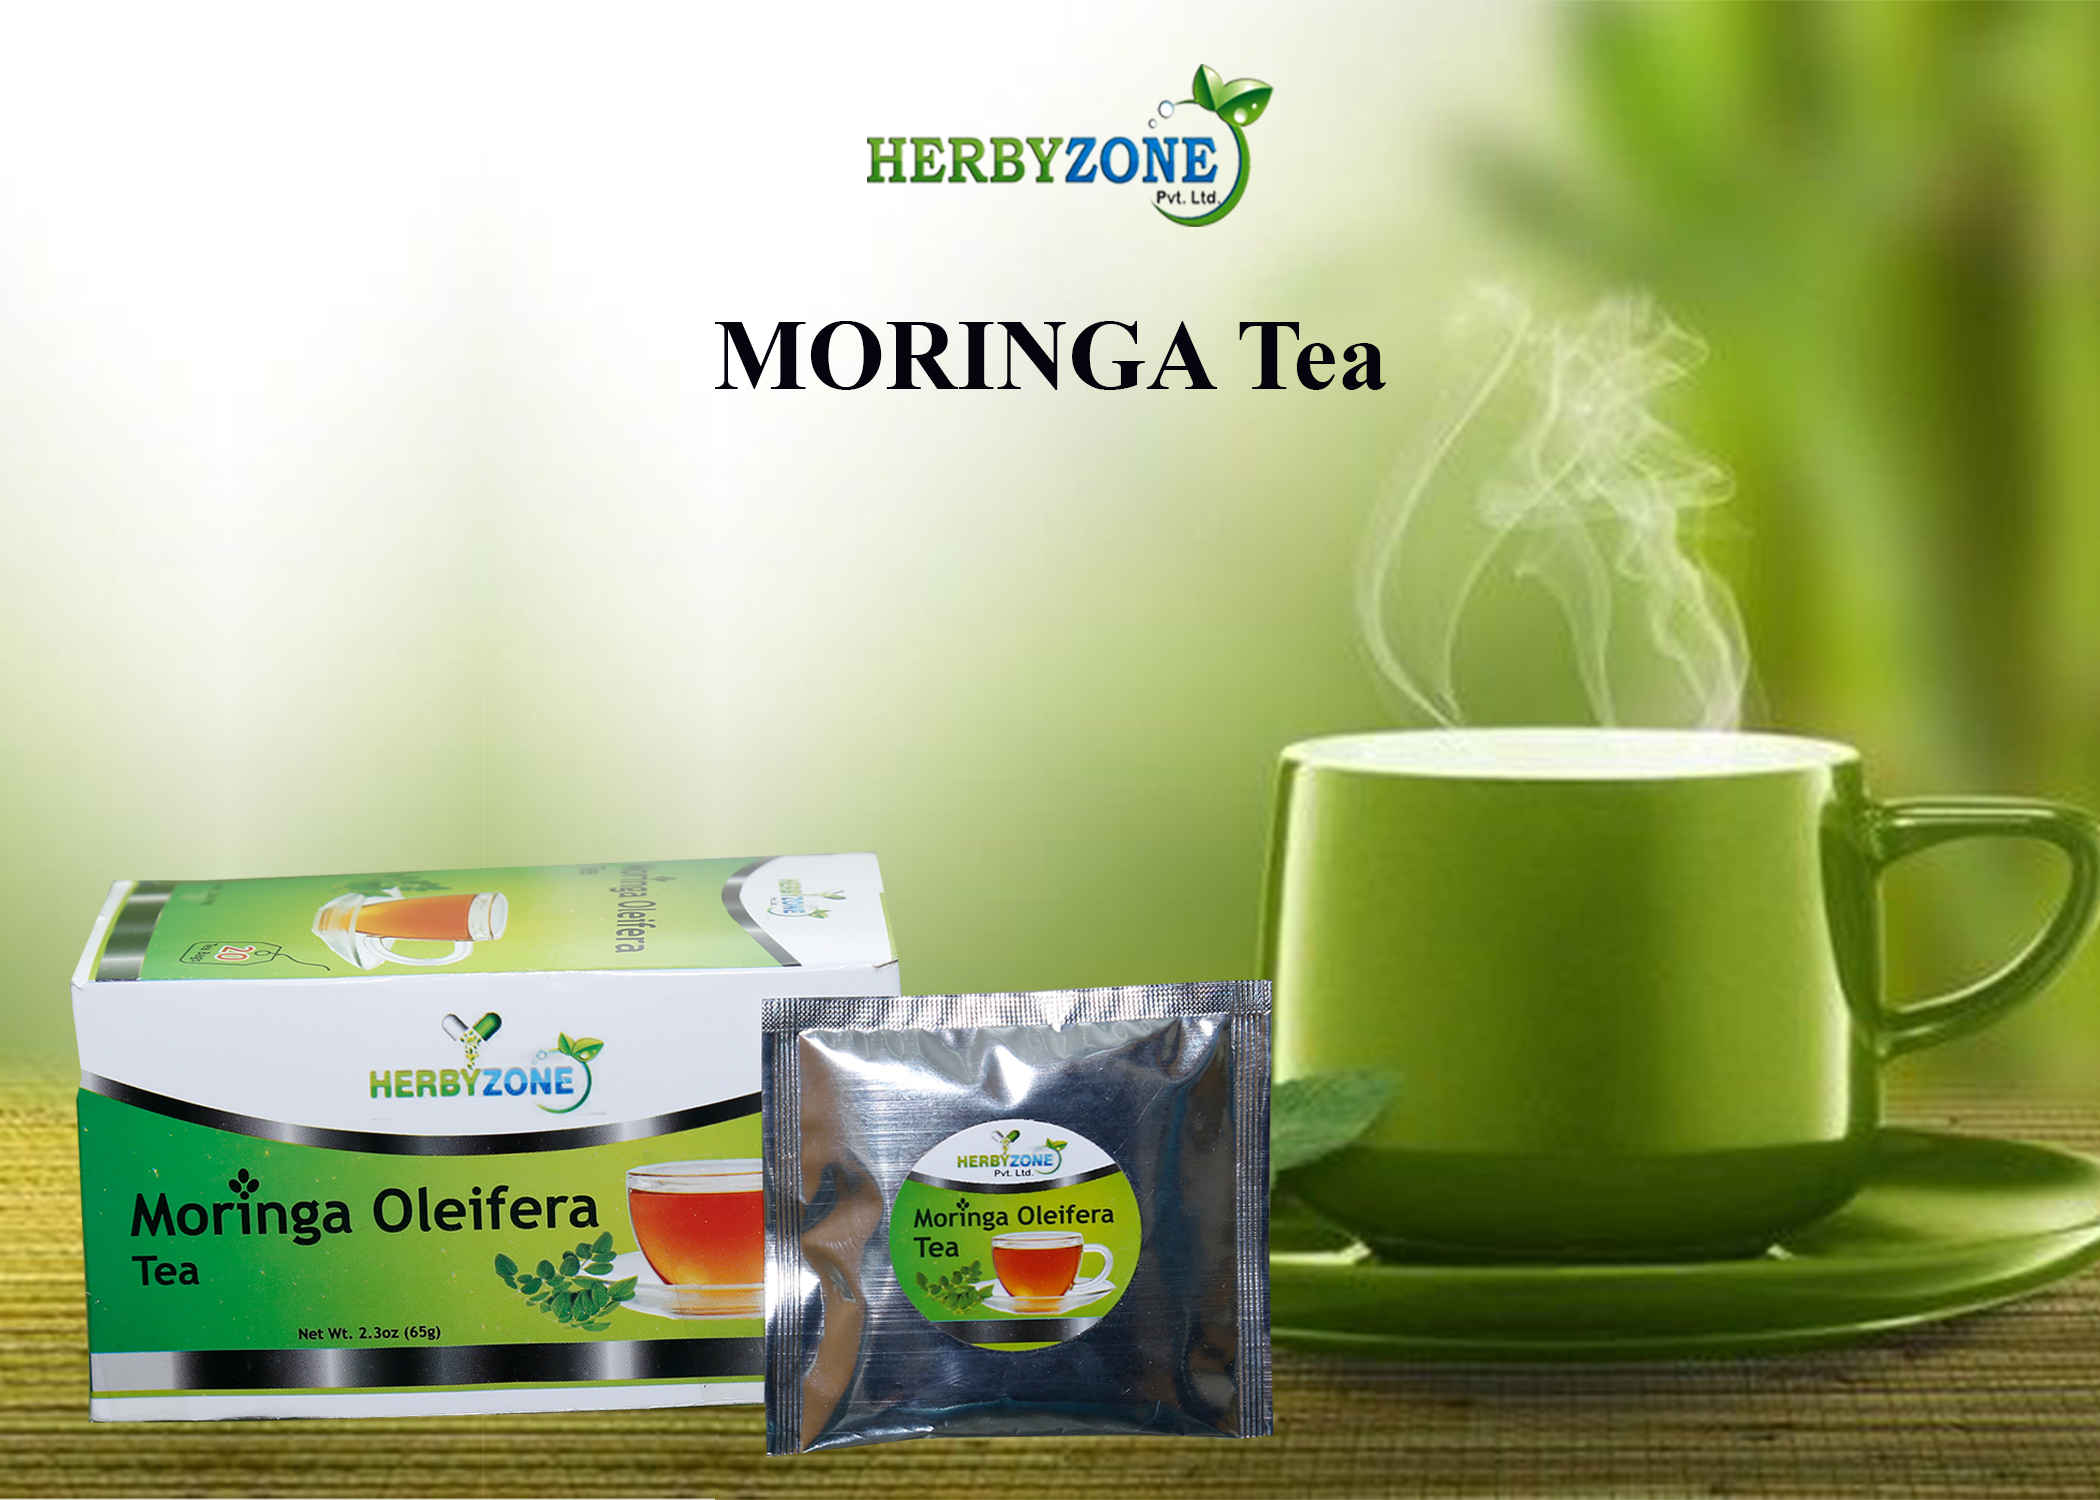 Moringa tea is very effective for control high blood pressure and sugar. Moringa tea boost's immune system.